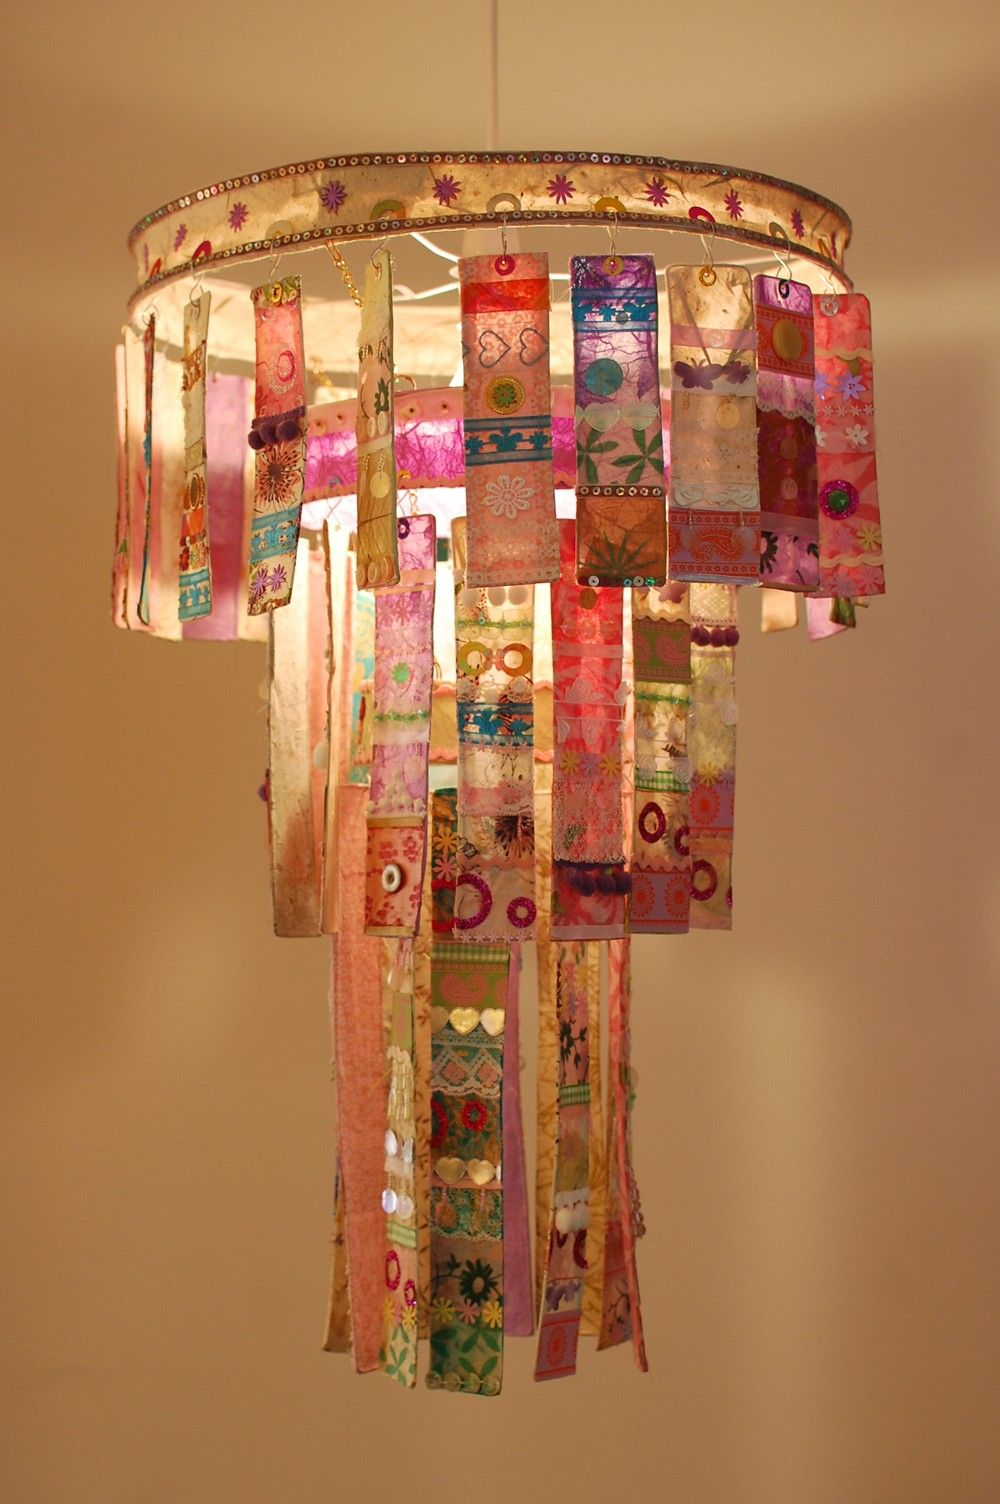 Three tier paper chandelier by louise traill radiance radiance three tier chandelier by louise traill a three tier chandelier made from paper mache strips of handmade paper and adorned with shiny sequins arubaitofo Gallery